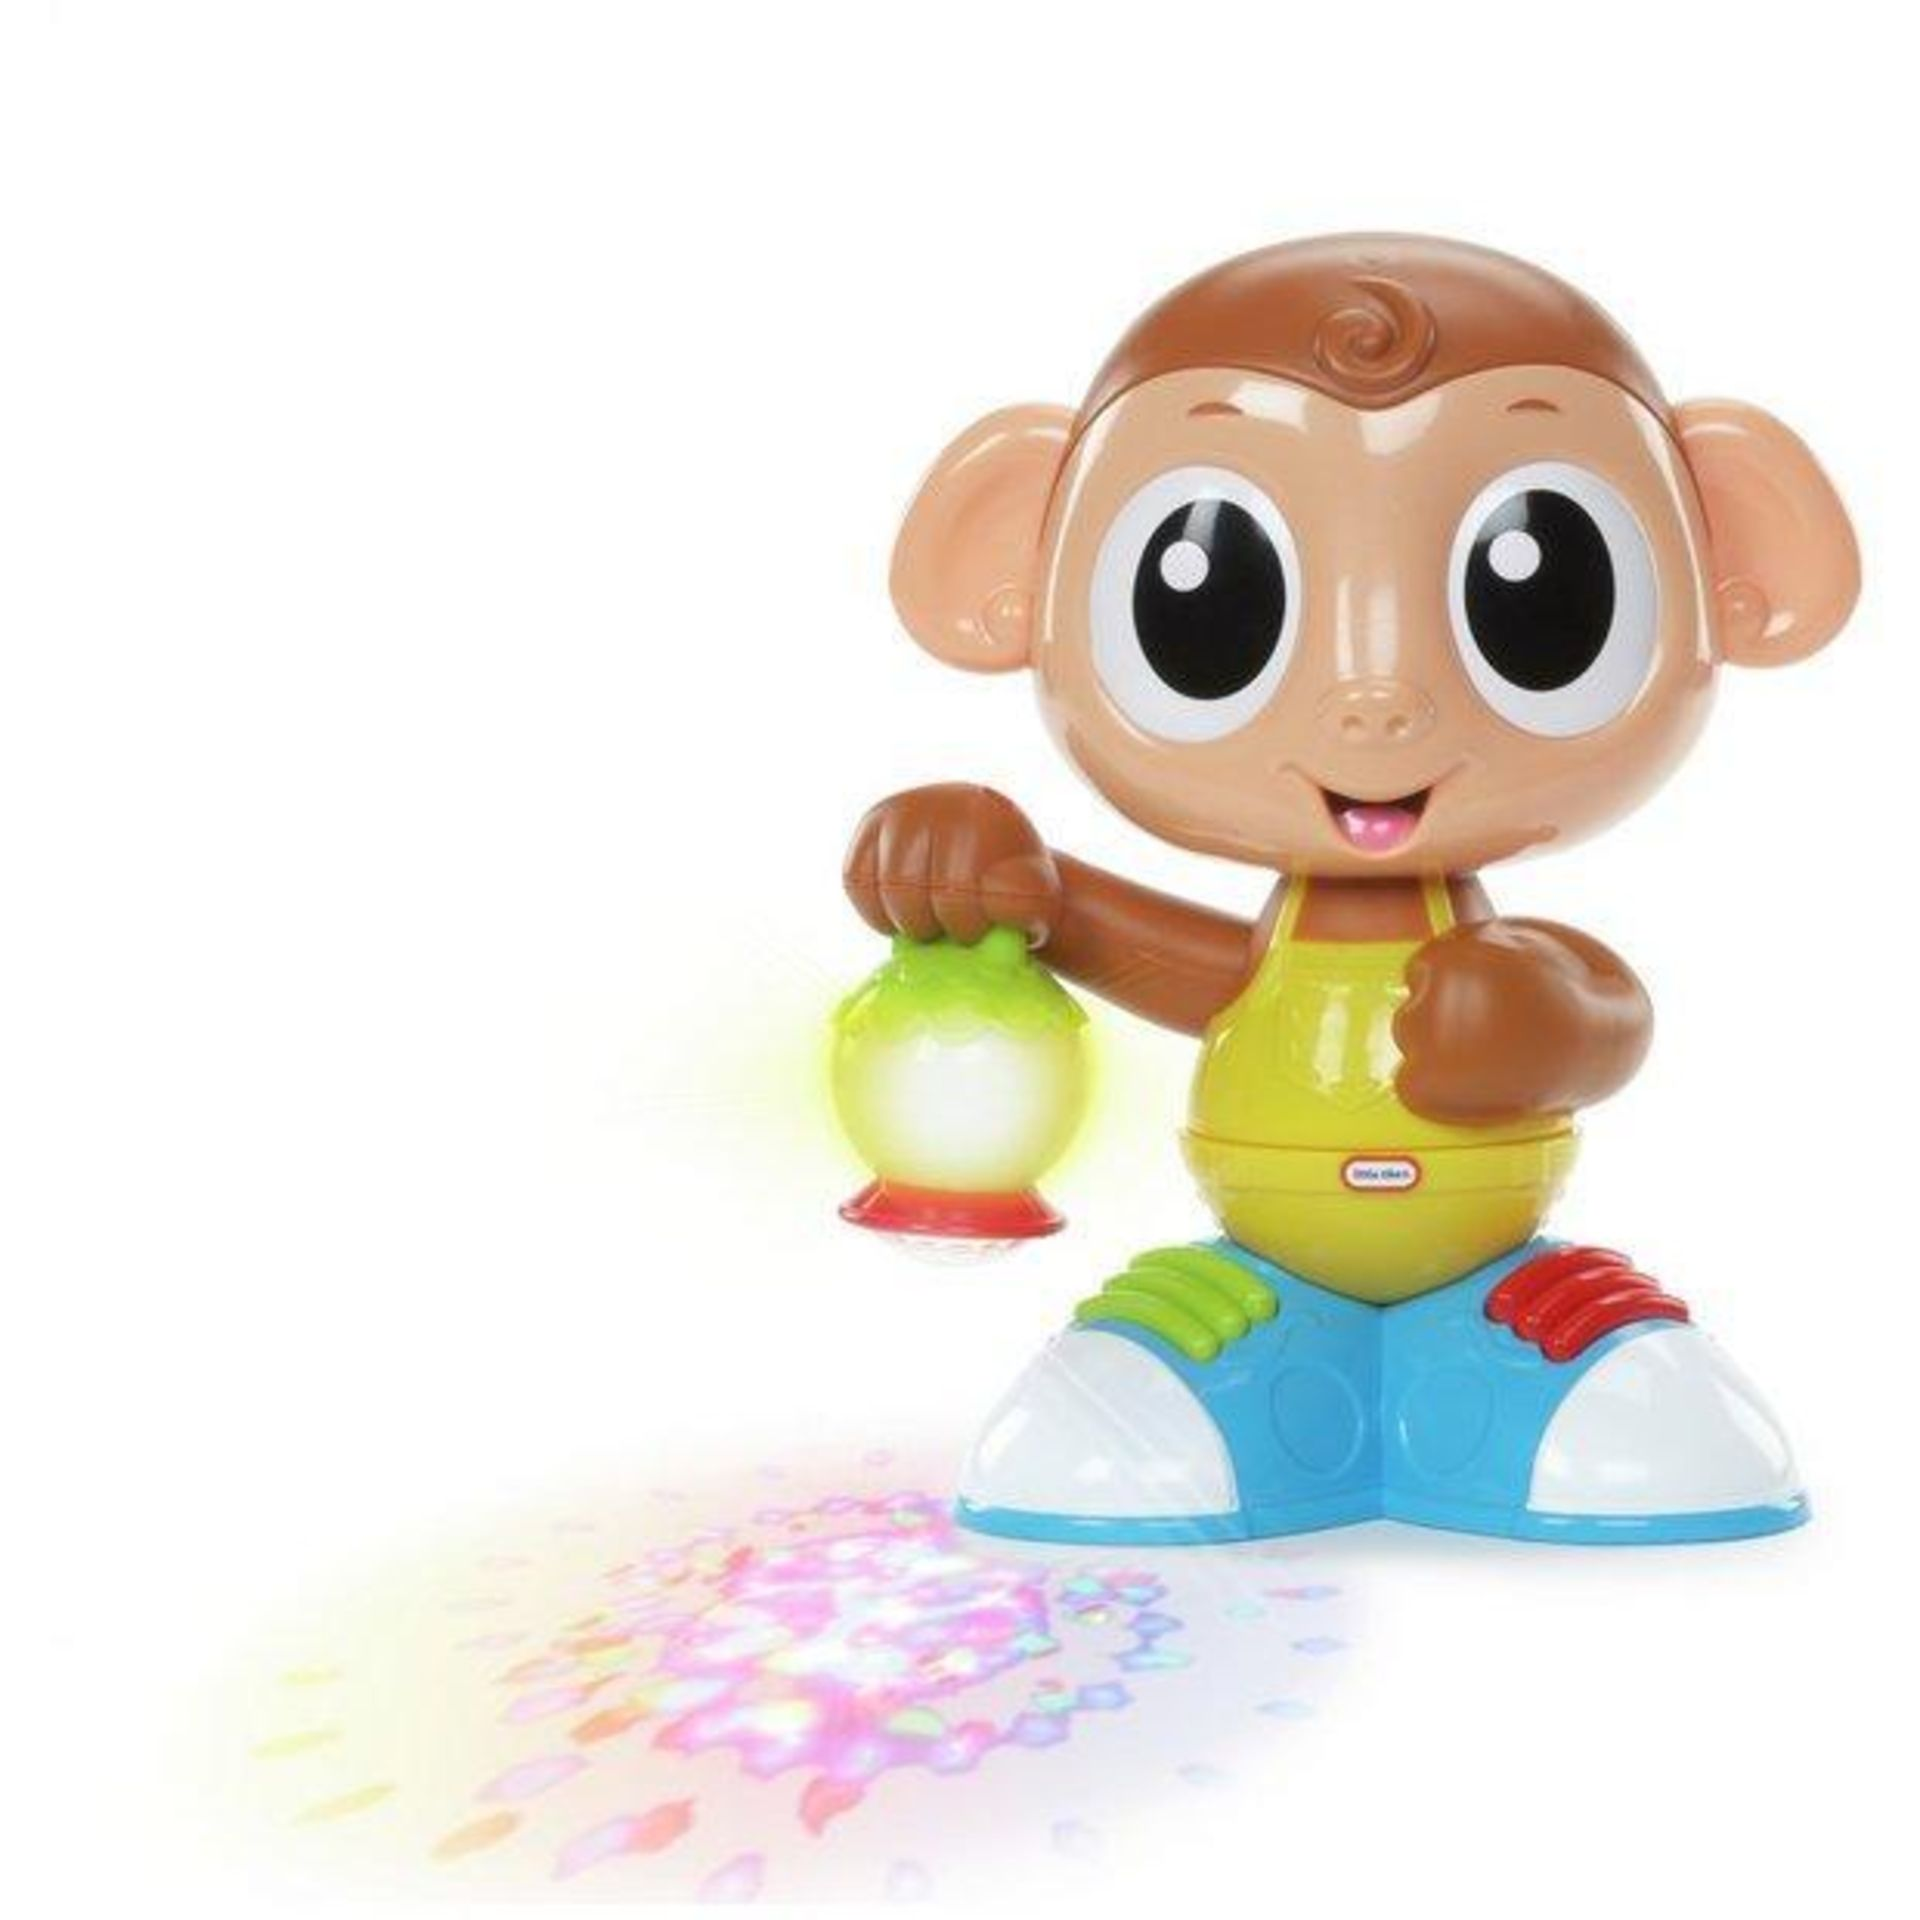 Little Tikes Moving Lights Monkey - £12.00 RRP